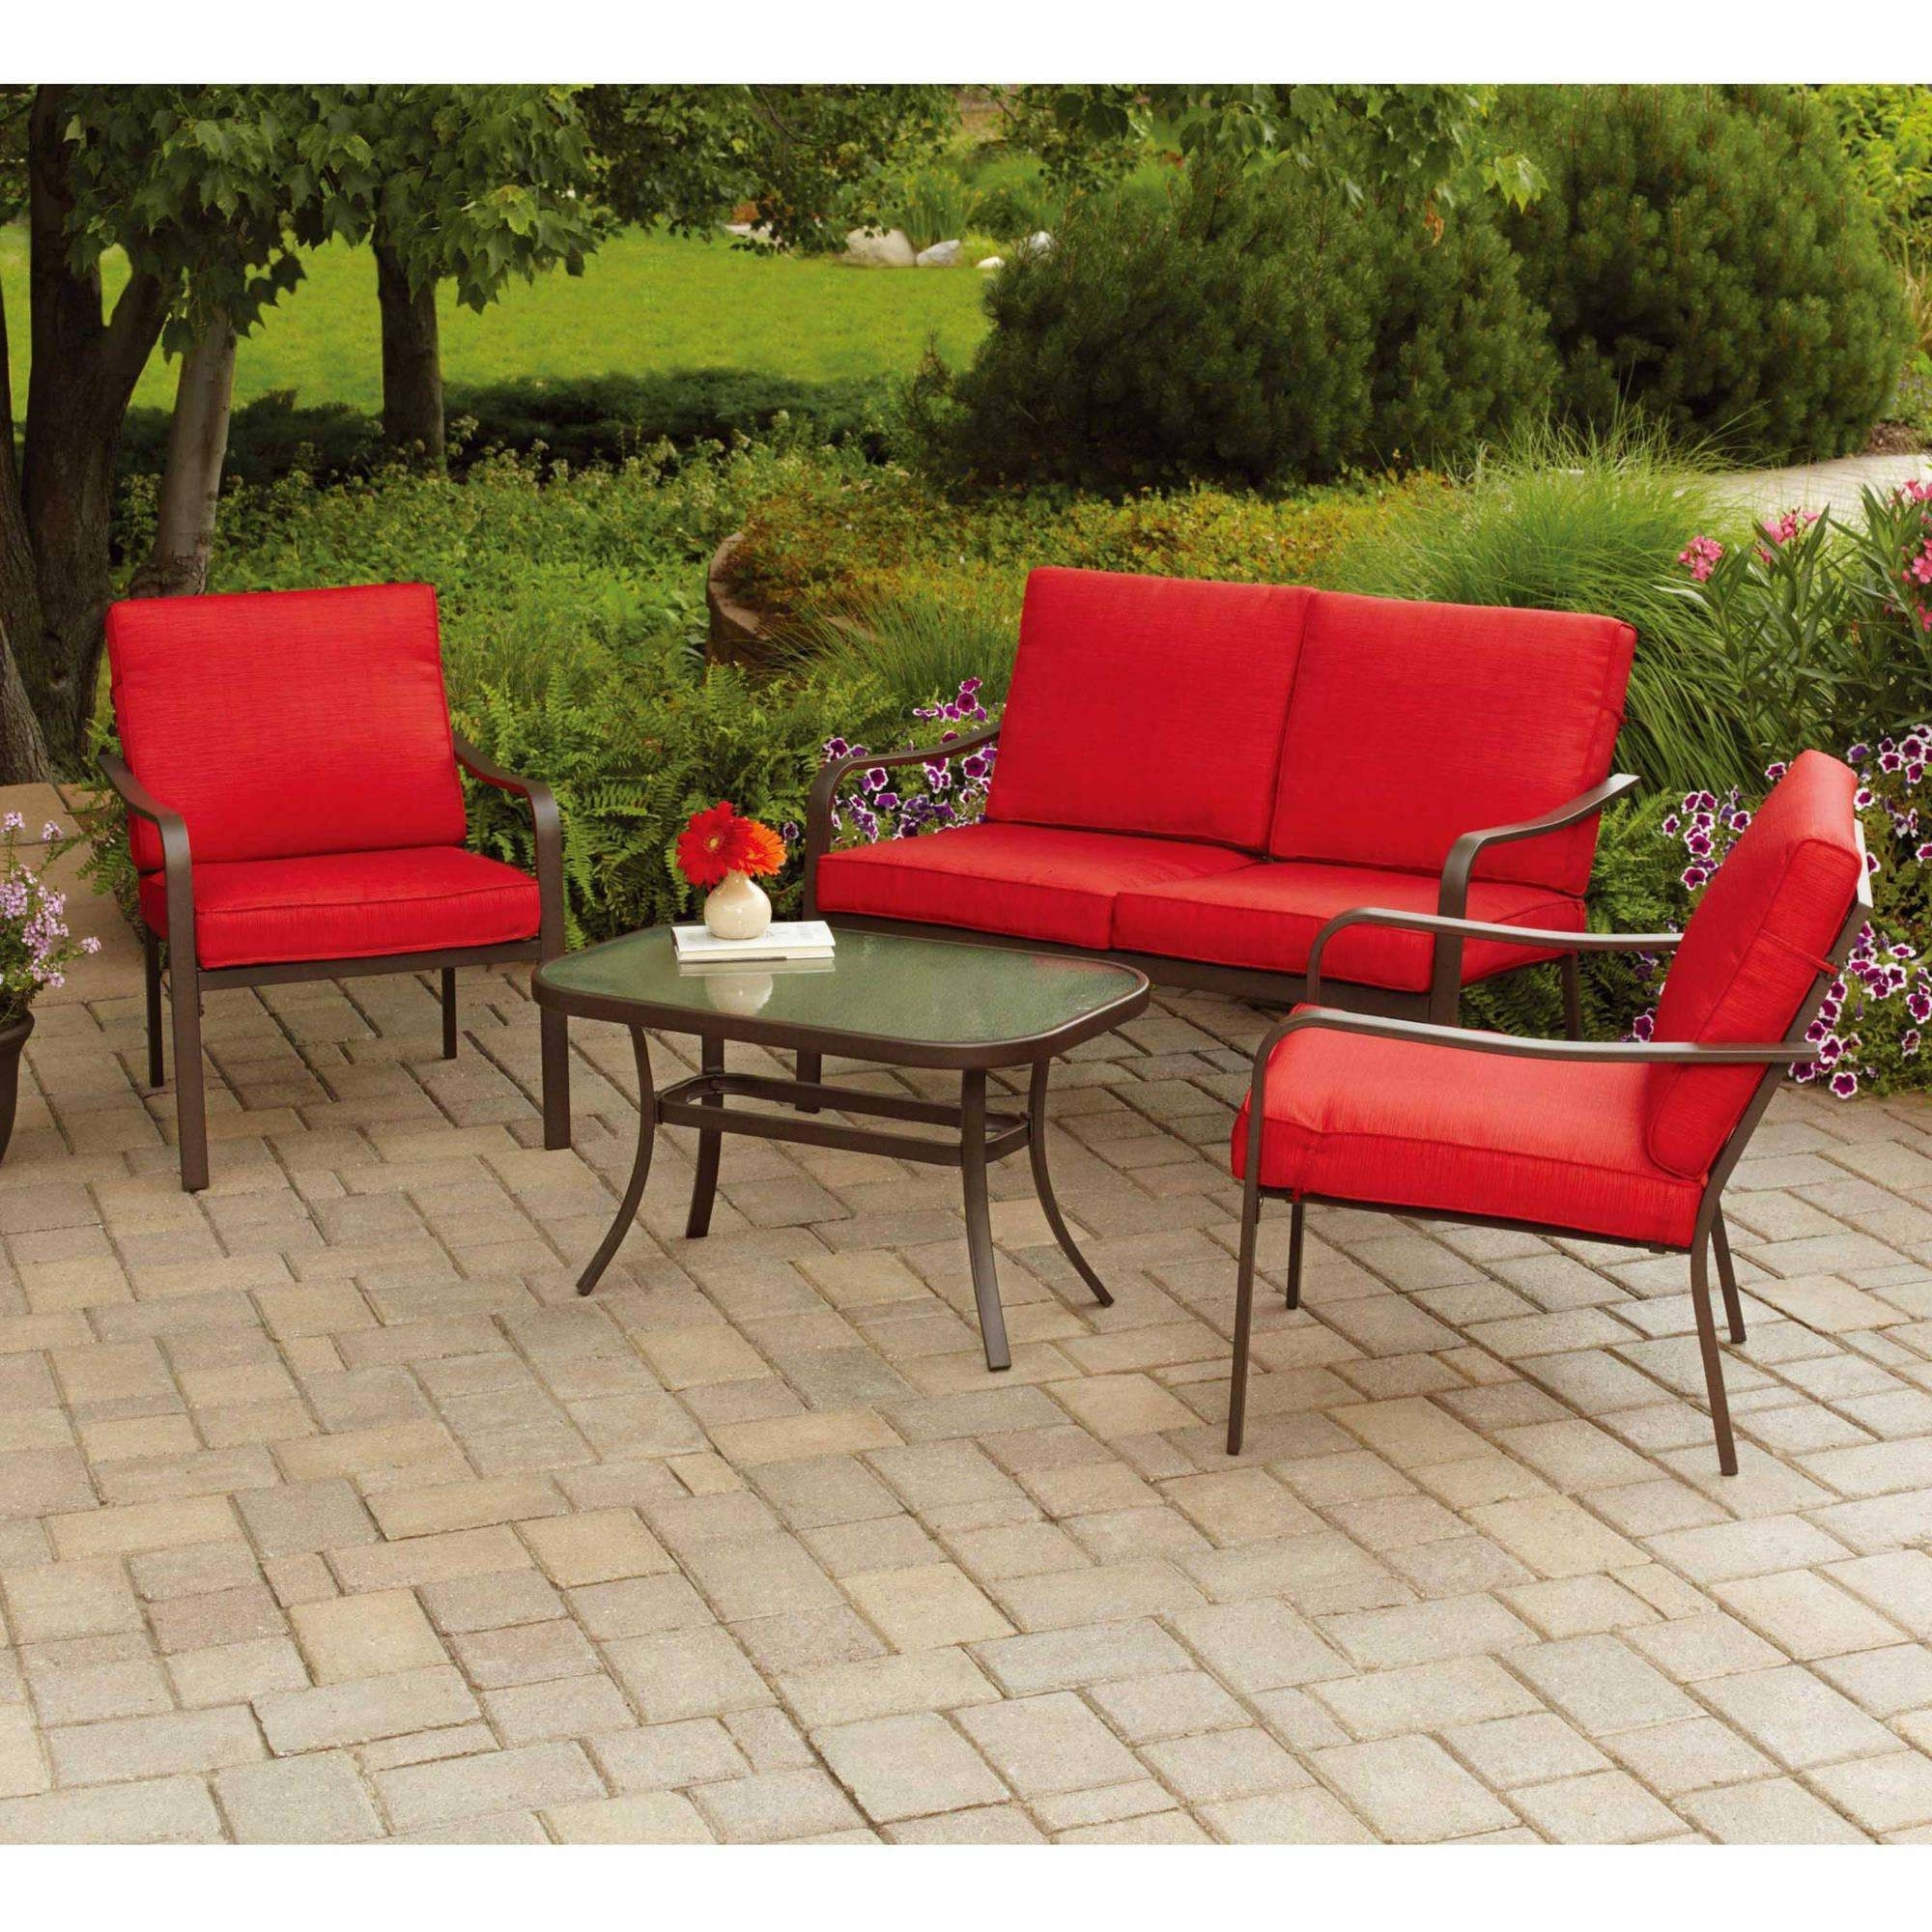 Most Recently Released Conversation Sets Small Patio Furniture Sets Cheap Garden Concept Throughout Patio Conversation Sets With Dining Table (View 7 of 15)